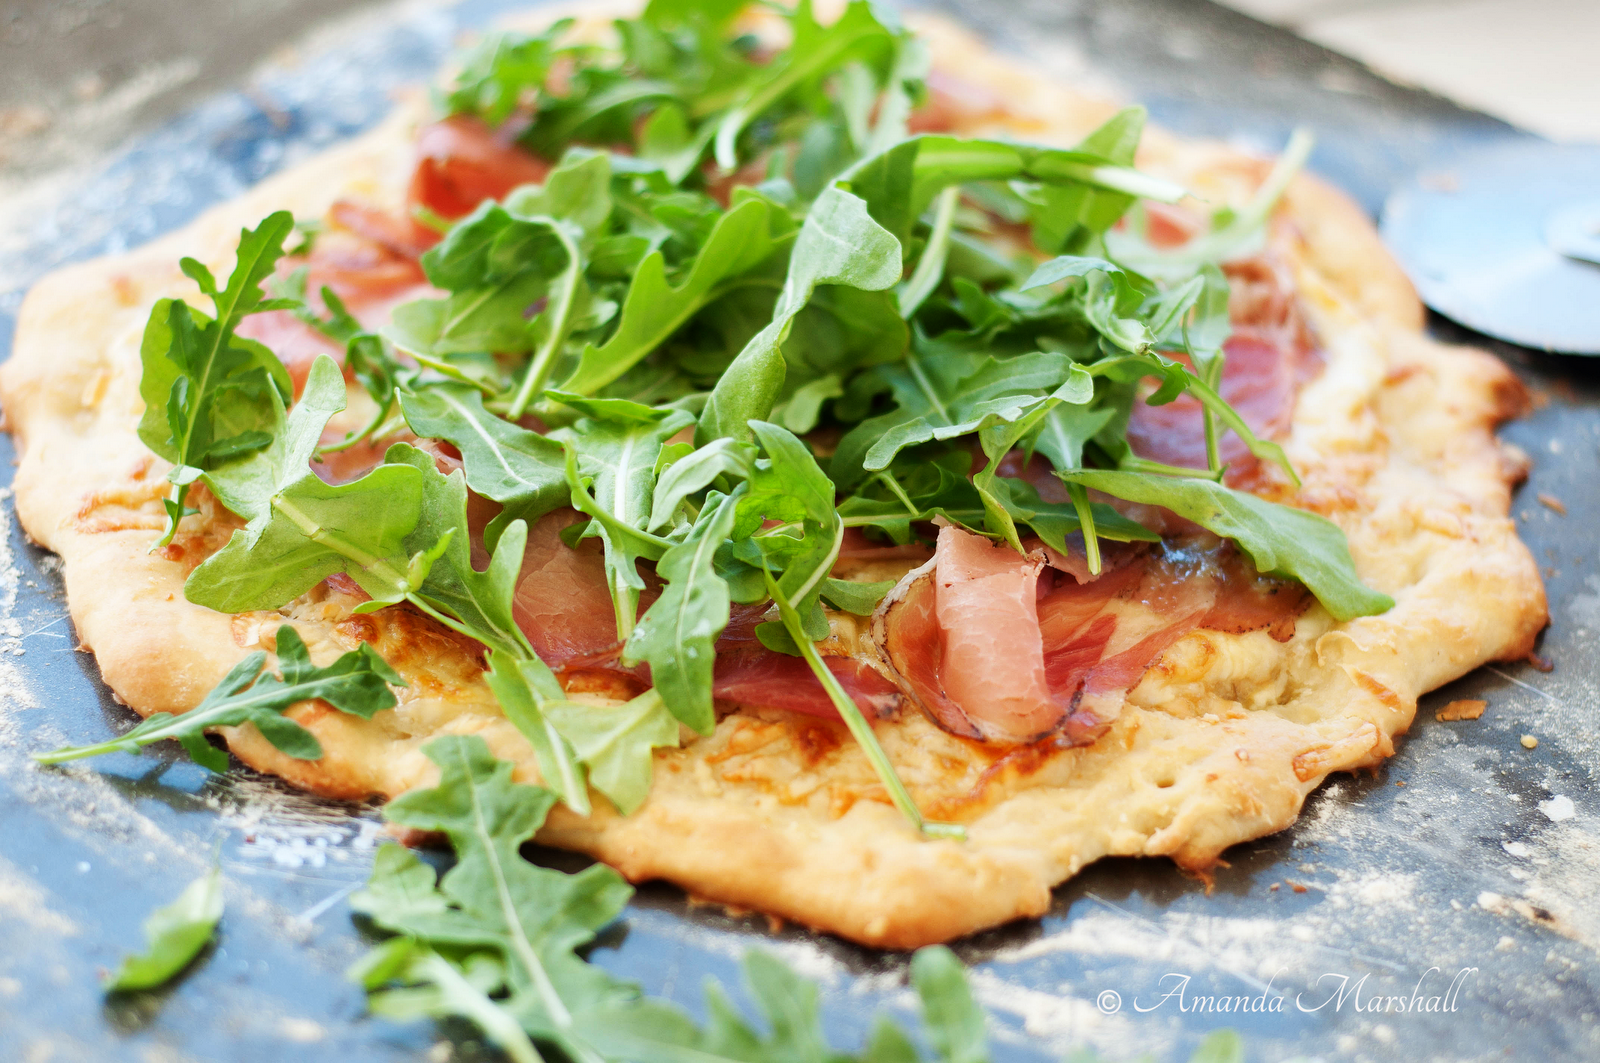 Marshalls Abroad: Summer Arugula & Prosciutto Pizza with Melone